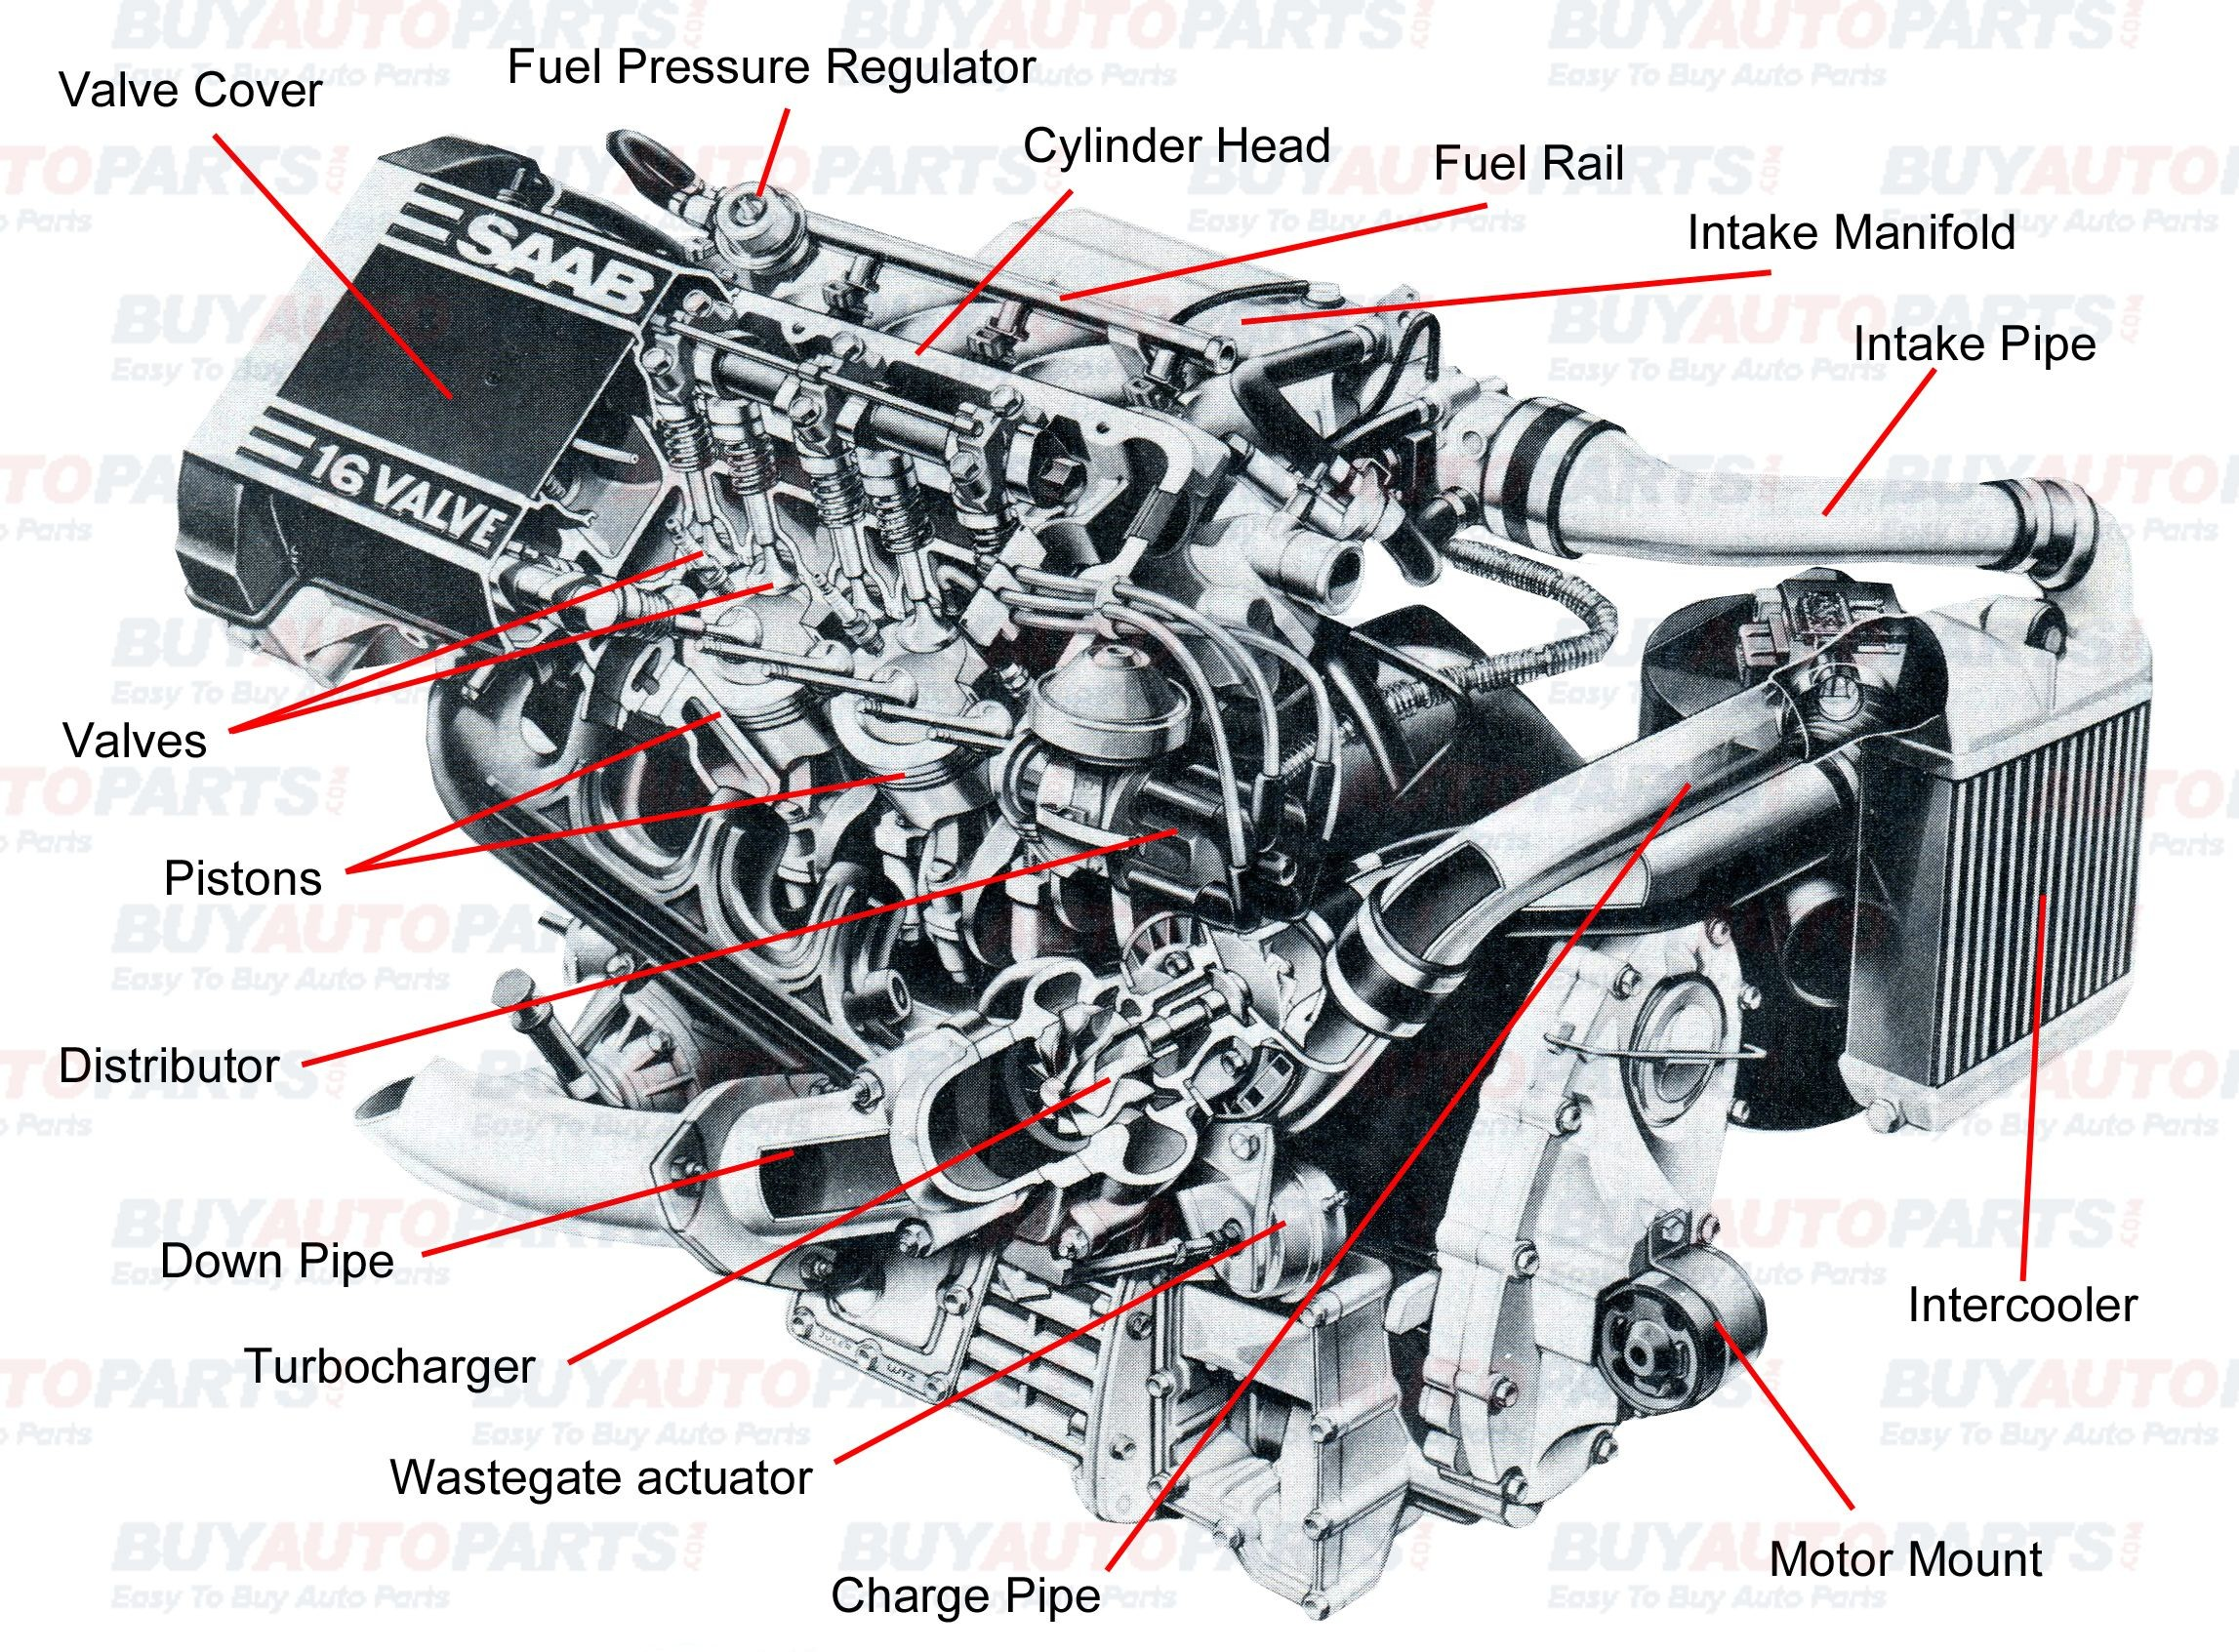 Basic Car Parts Diagram Pin by Jimmiejanet Testellamwfz On What Does An Engine with Turbo